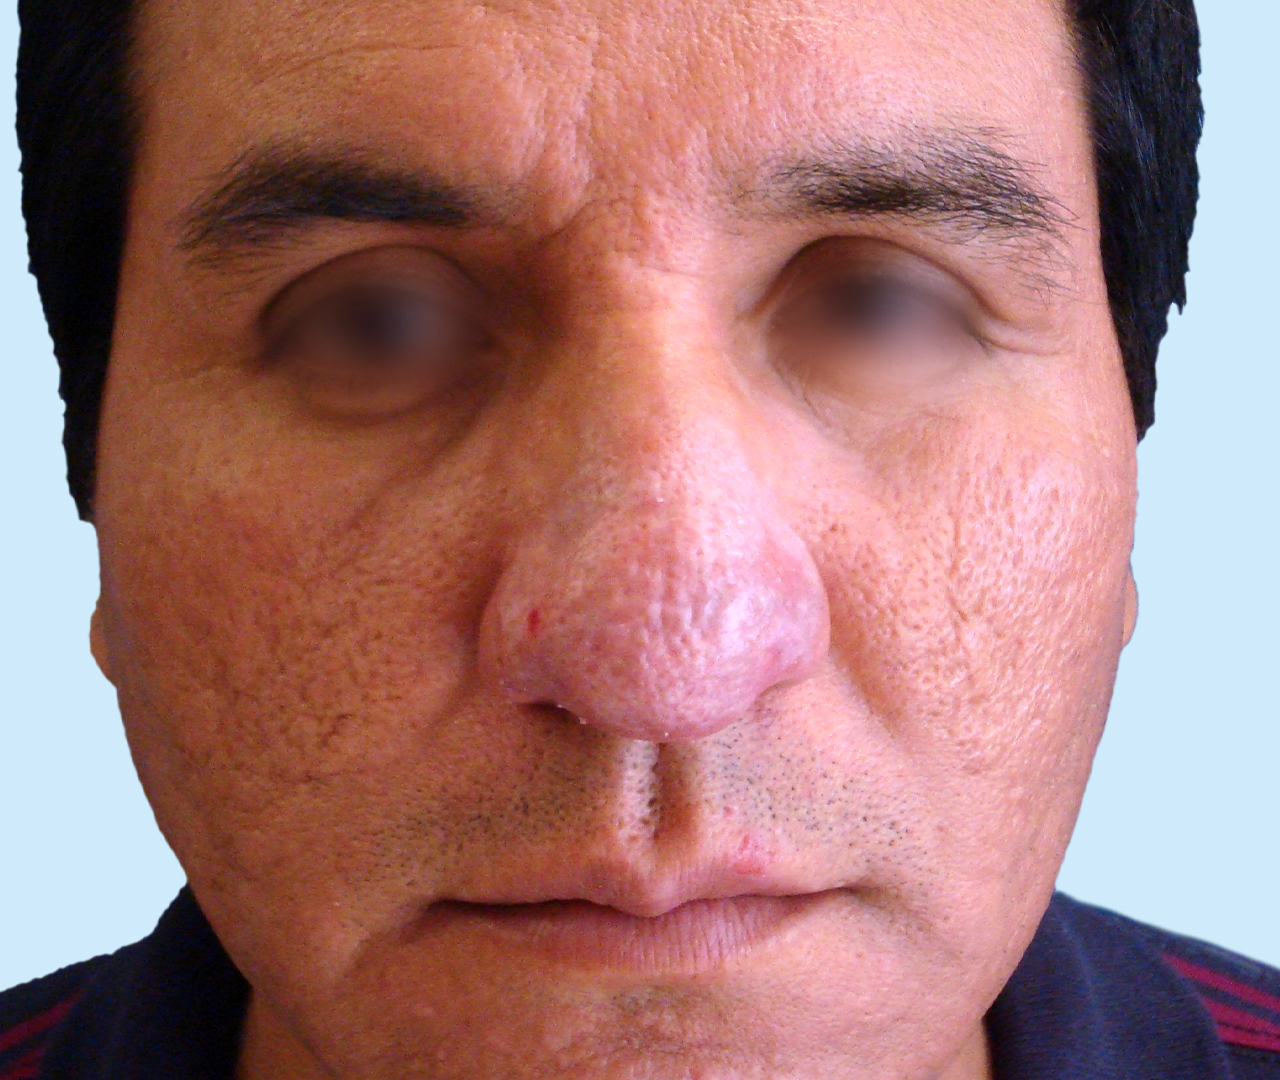 Laser Skin Resurfacing TotalFX 5